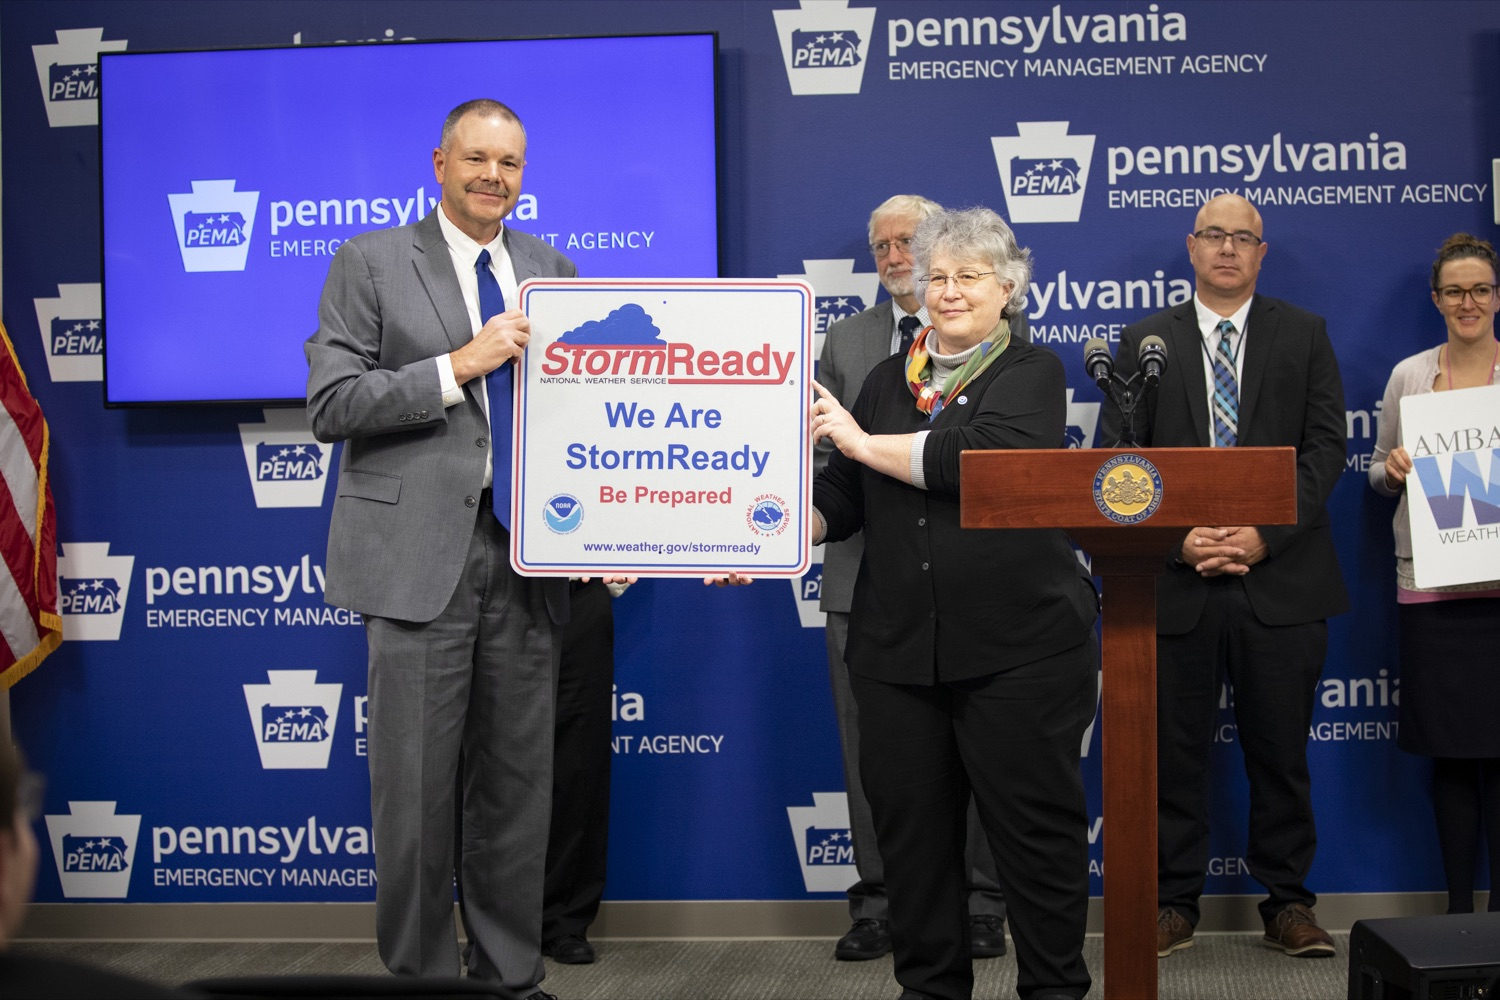 "<a href=""https://filesource.wostreaming.net/commonwealthofpa/photo/17500_pema_StormReady_cz_15.JPG"" target=""_blank"">⇣ Download Photo<br></a>Barb Watson gives PEMA Director Randy Padfield proof of StormReady certification in Harrisburg on November 20, 2019."